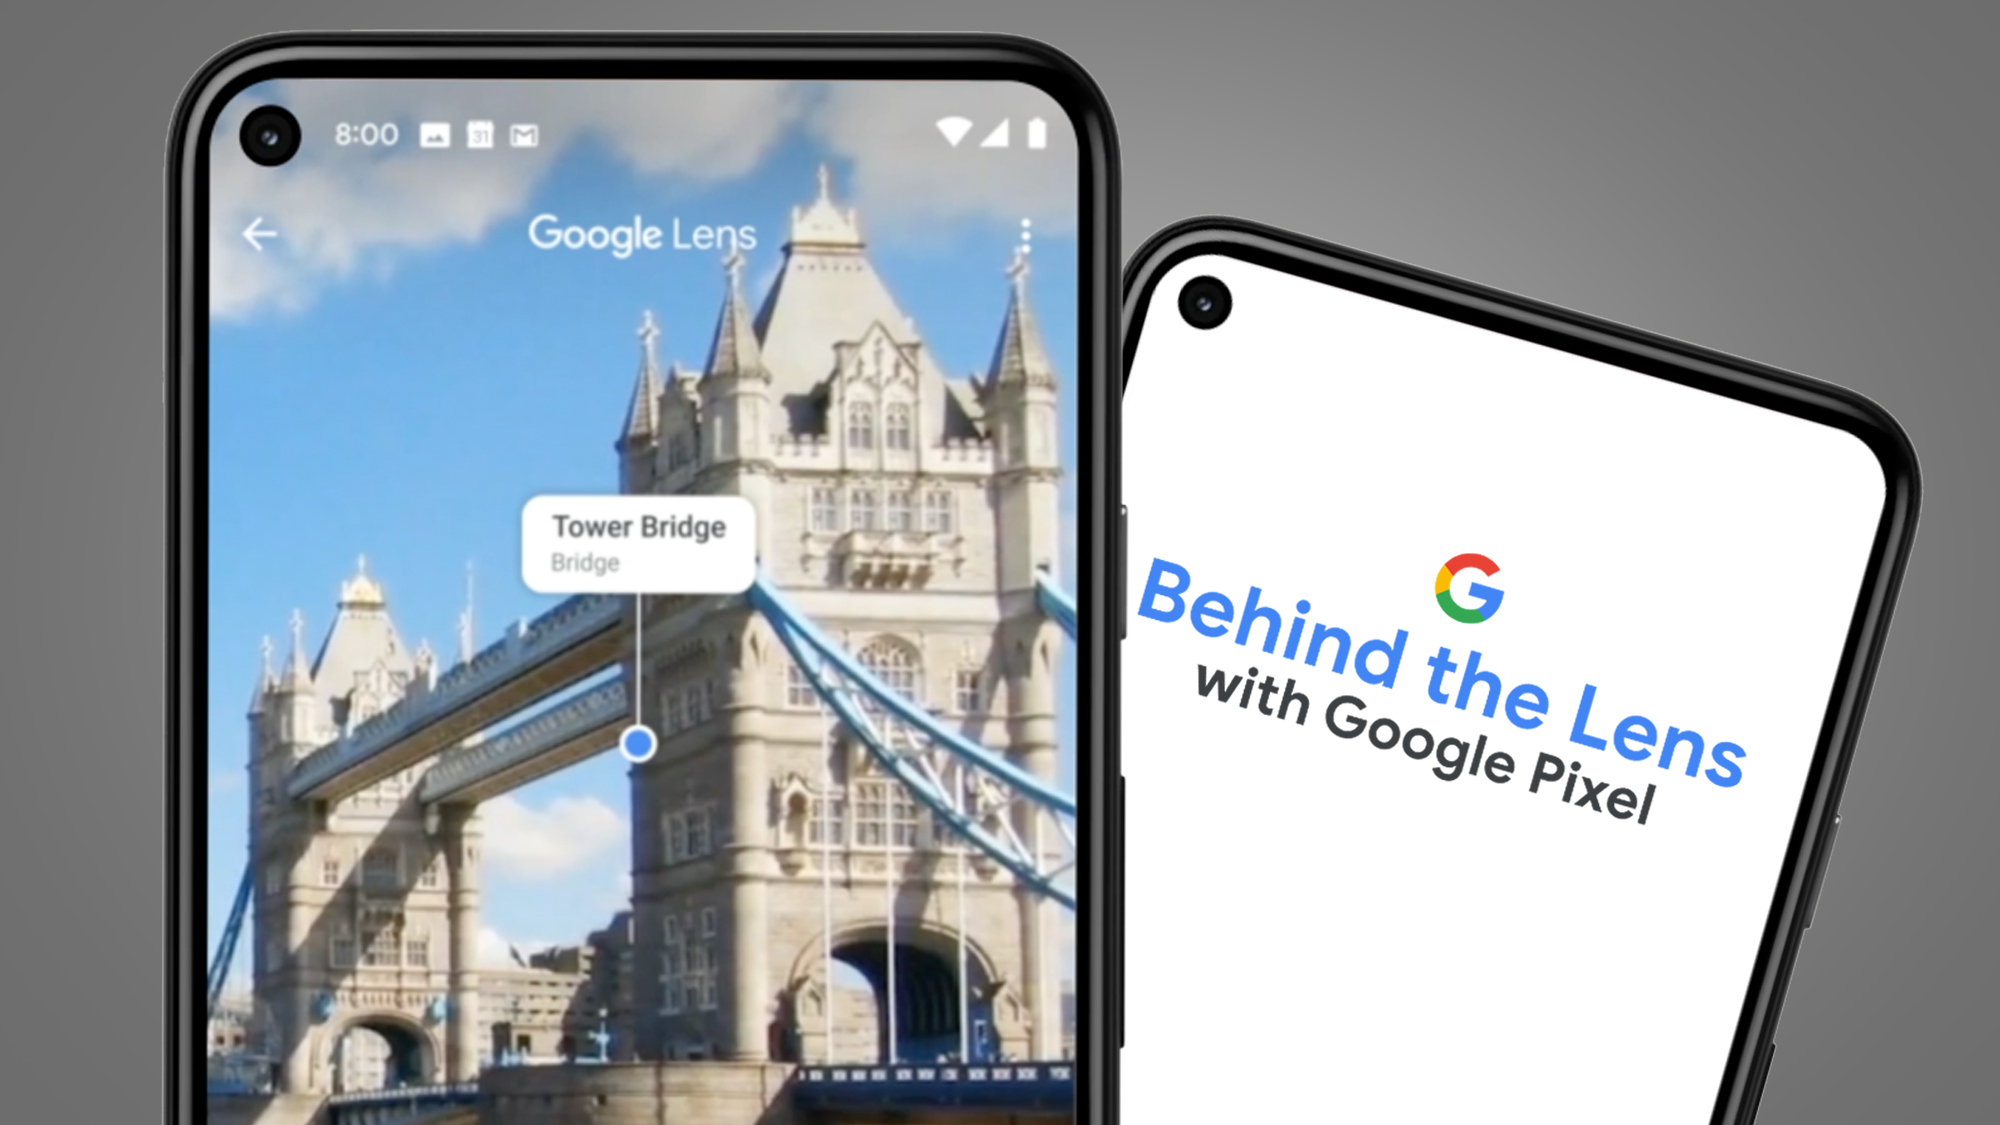 Google announces Google Lens city walking tours –here's how to sign up